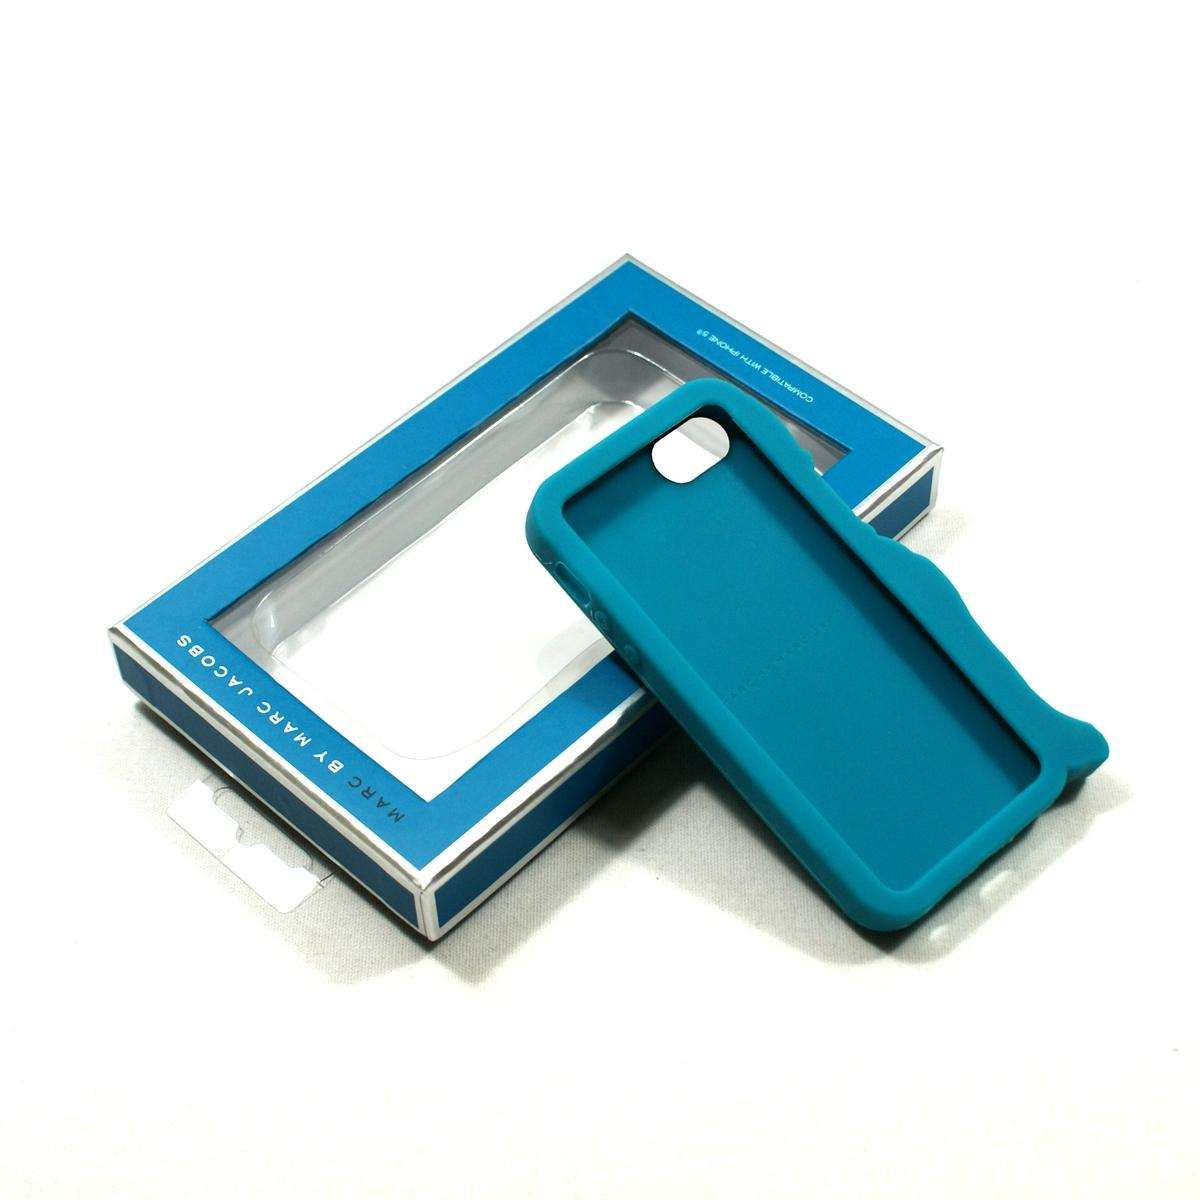 Case Design marc jacobs cell phone cases : Home Marc By Marc Jacobs IPhone 5 Case Premium Silicone Painted Teal ...